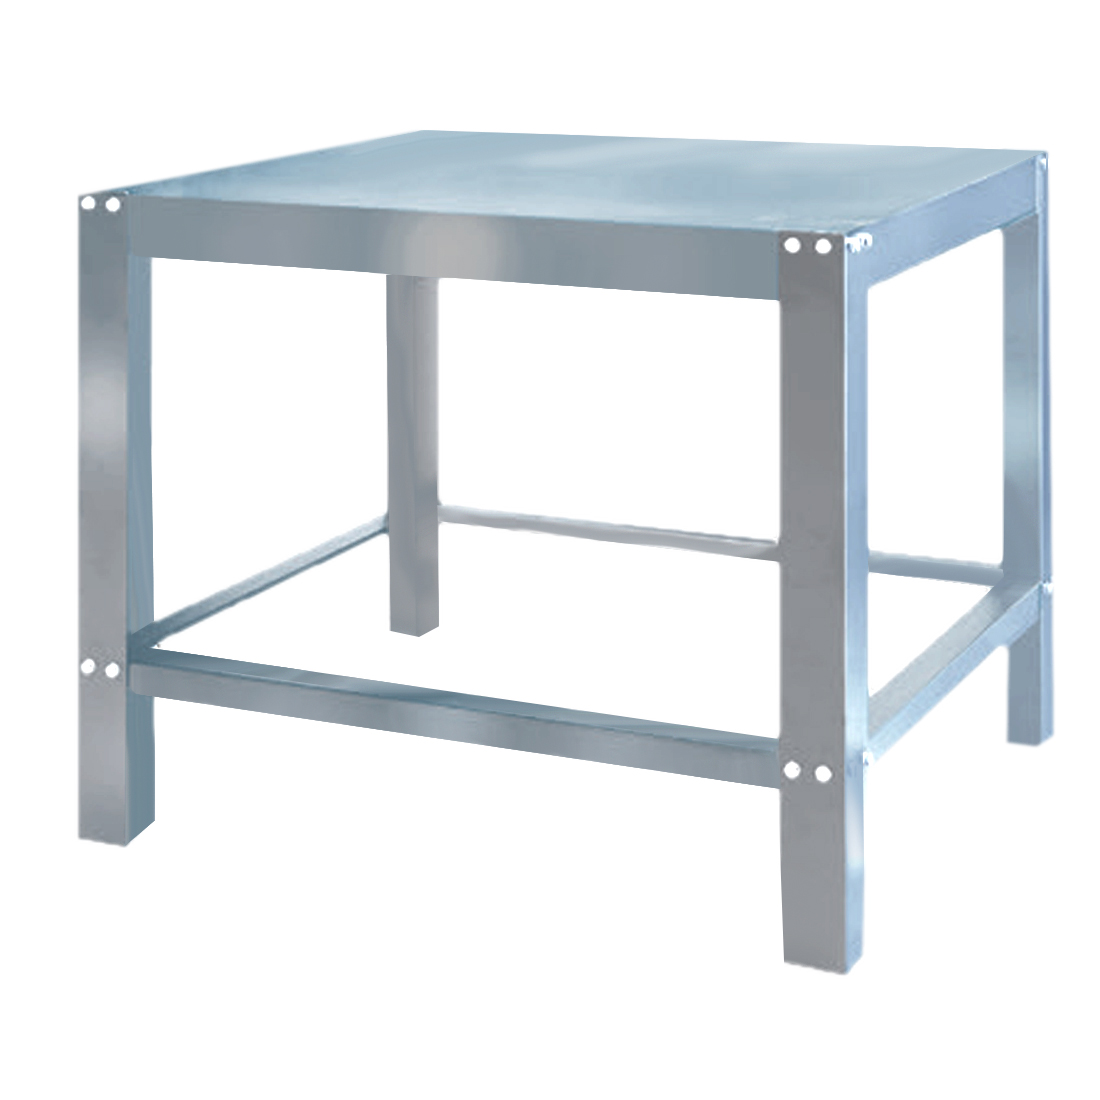 TP-2-1-S Stainless Steel Stand